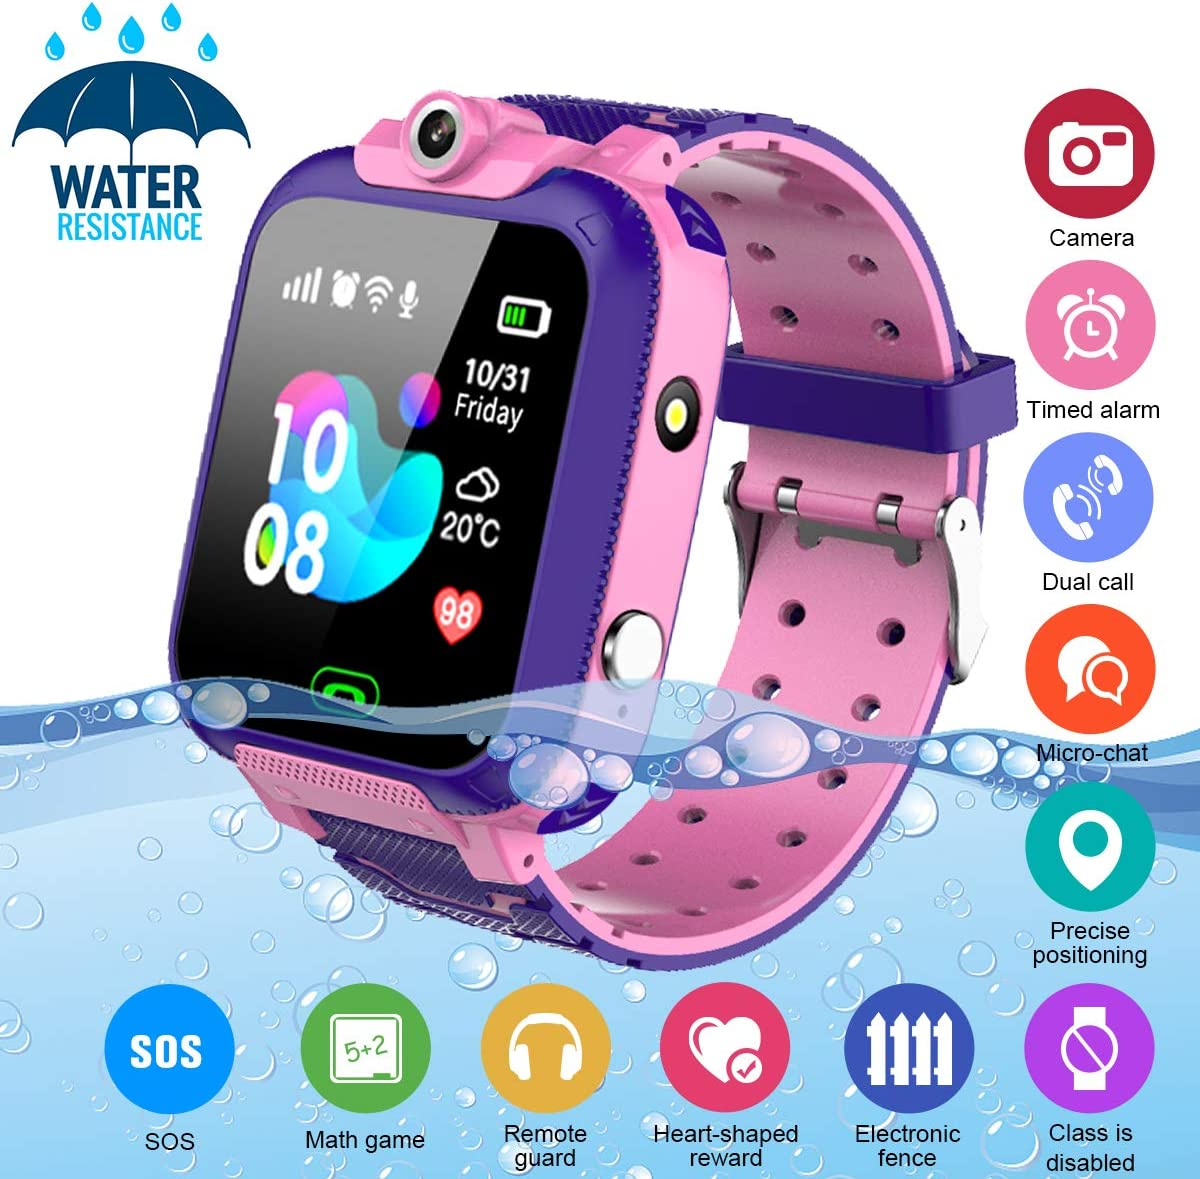 Kids Smart Watch,Childrens Smartwatch for Kids Girls,Waterproof LBS Tracker Watch HD Touch Screen Sport Smartwatch Phone Watch with SOS Call Camera Game Alarm for Children Teen Students,Pink